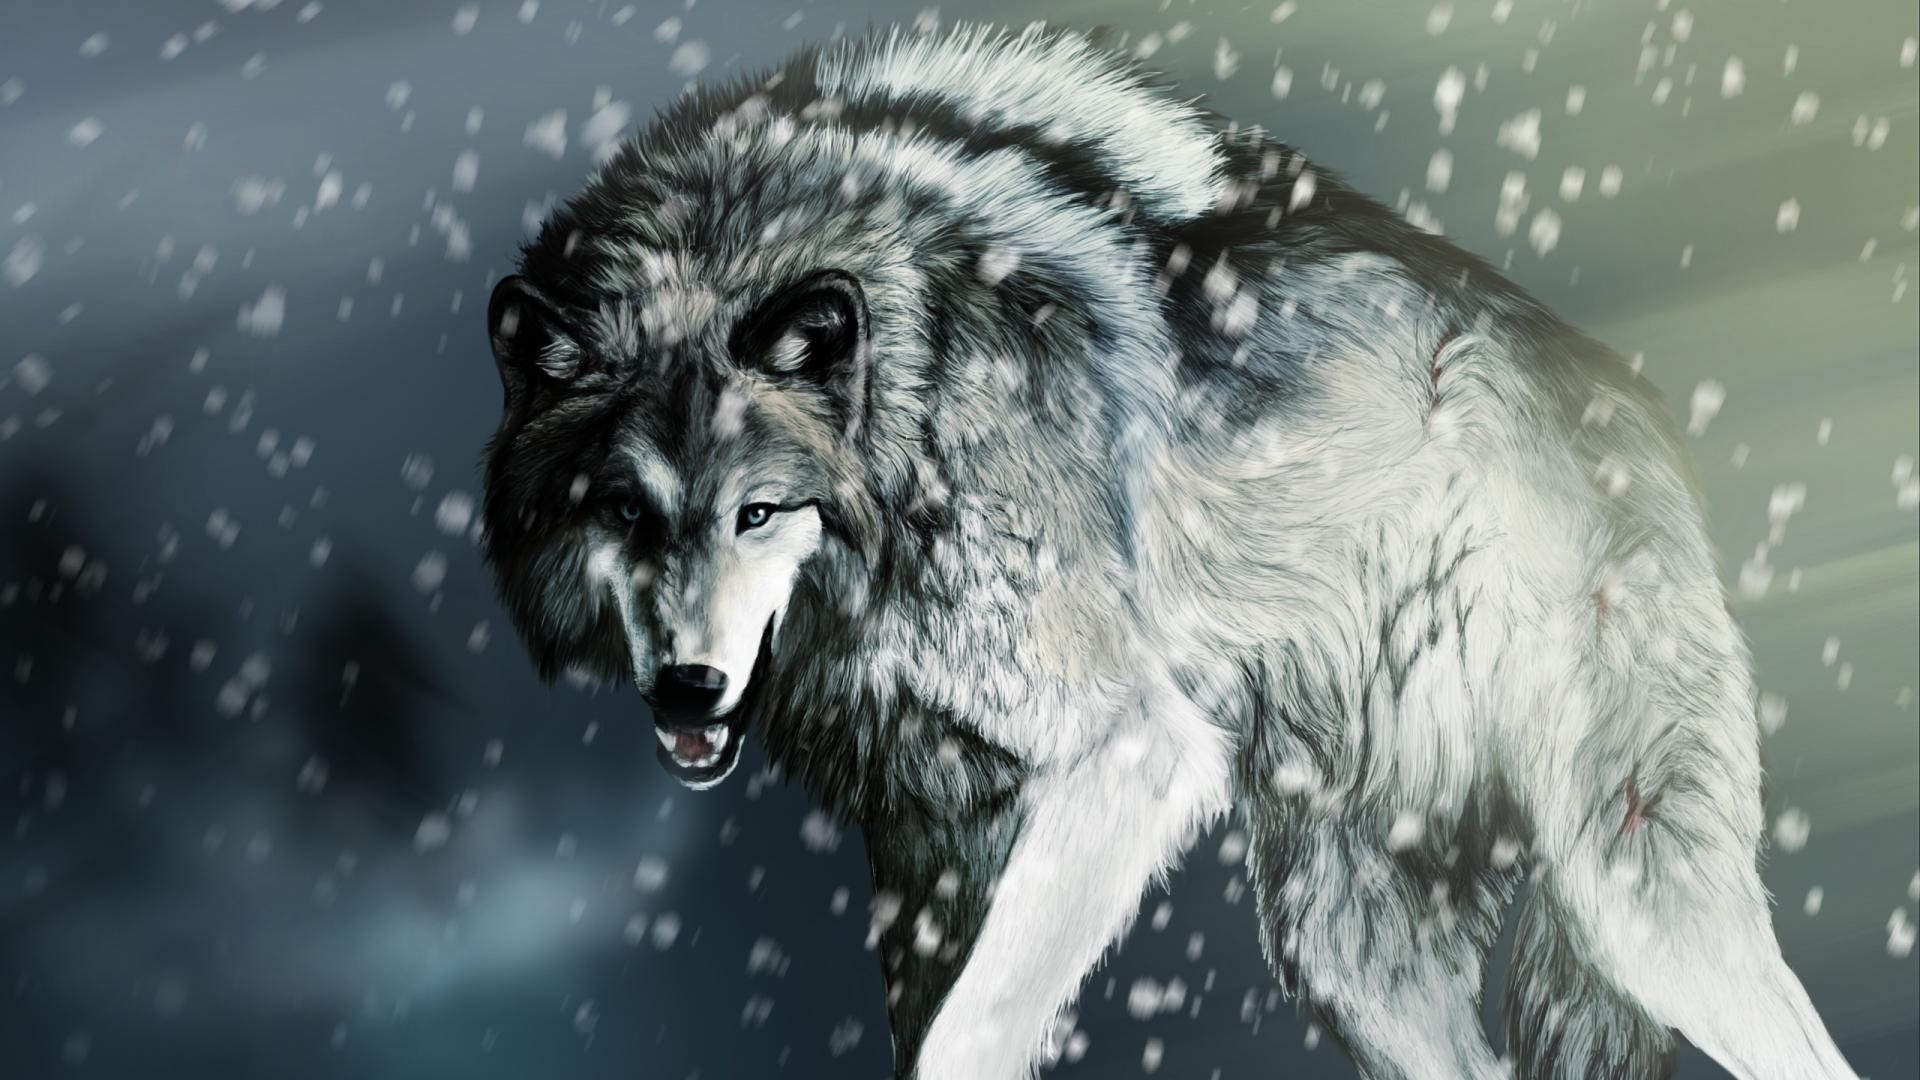 Angry Faced Wolf Wallpaper